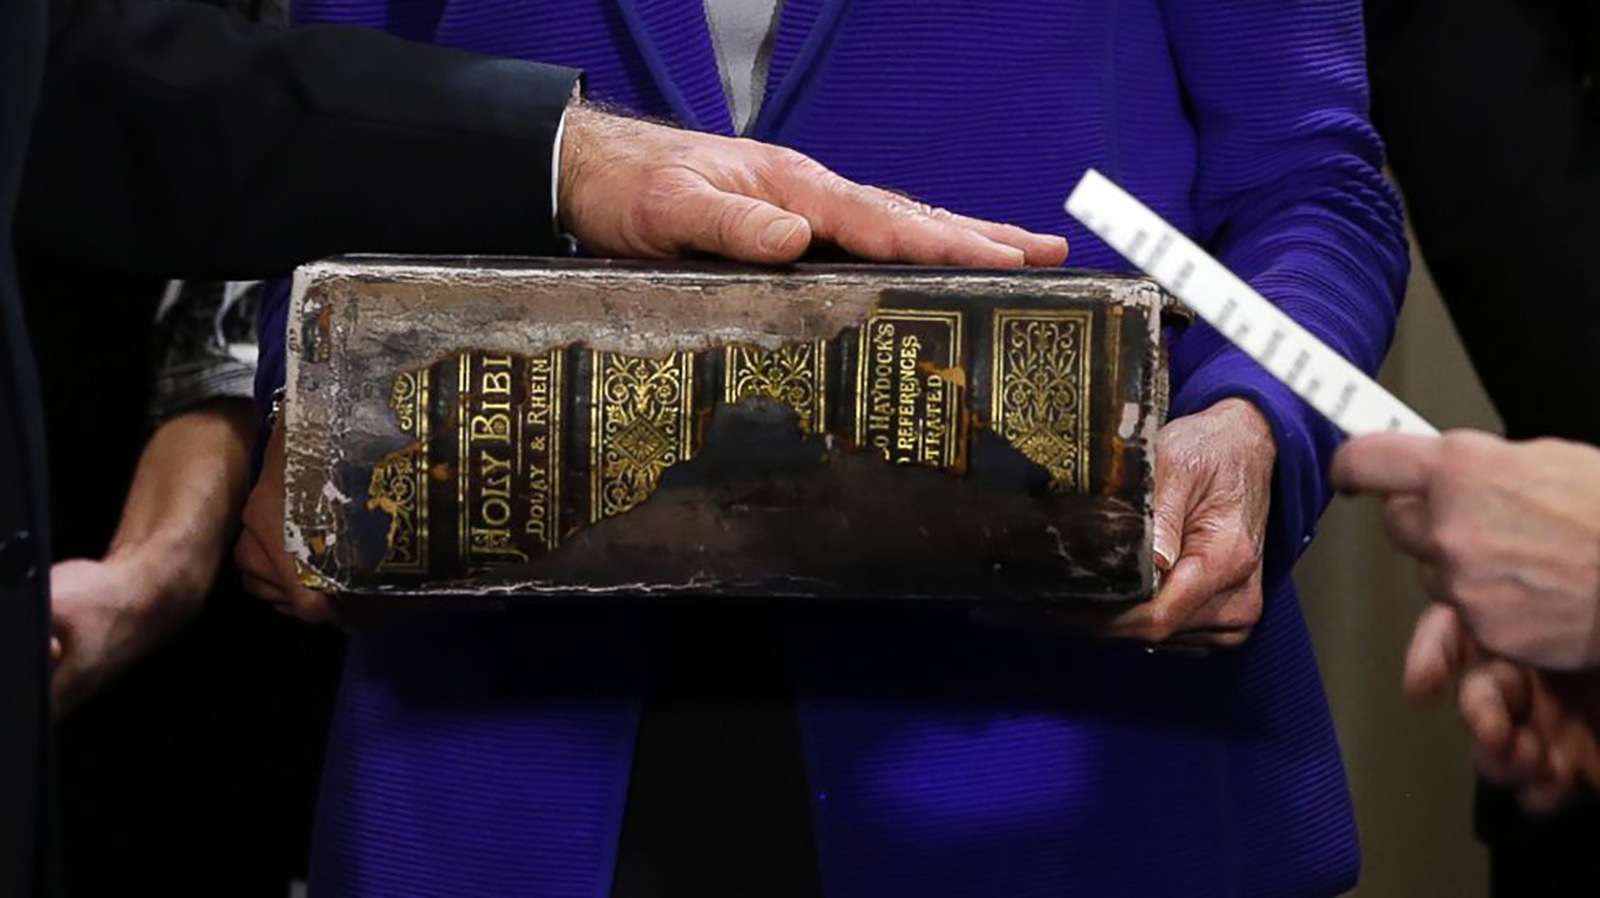 Joe Biden's Inauguration Bible Has More Meaning Than You Realize